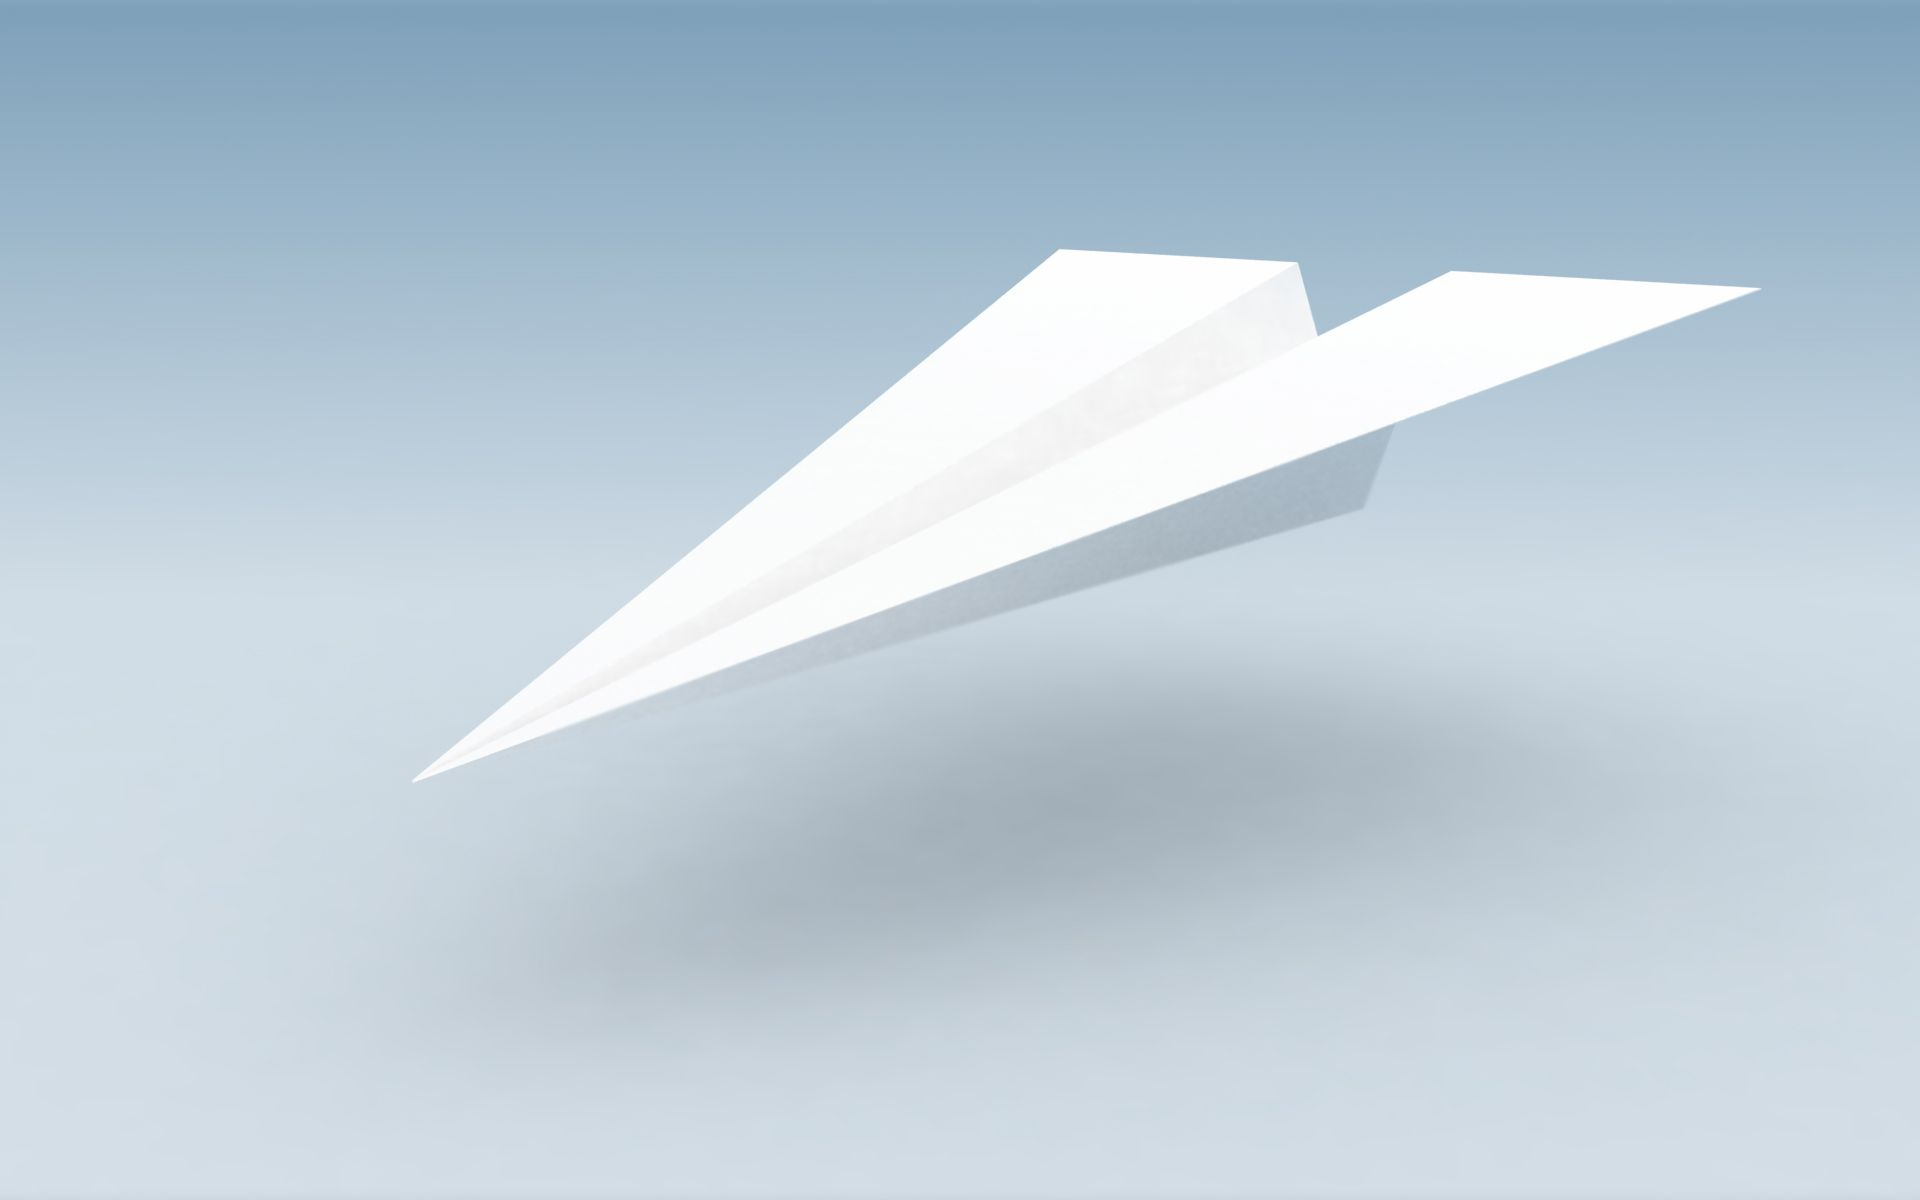 Cool Paper Plane Diagram Wiring 1 Light 3 Switches Installation Art Google Search